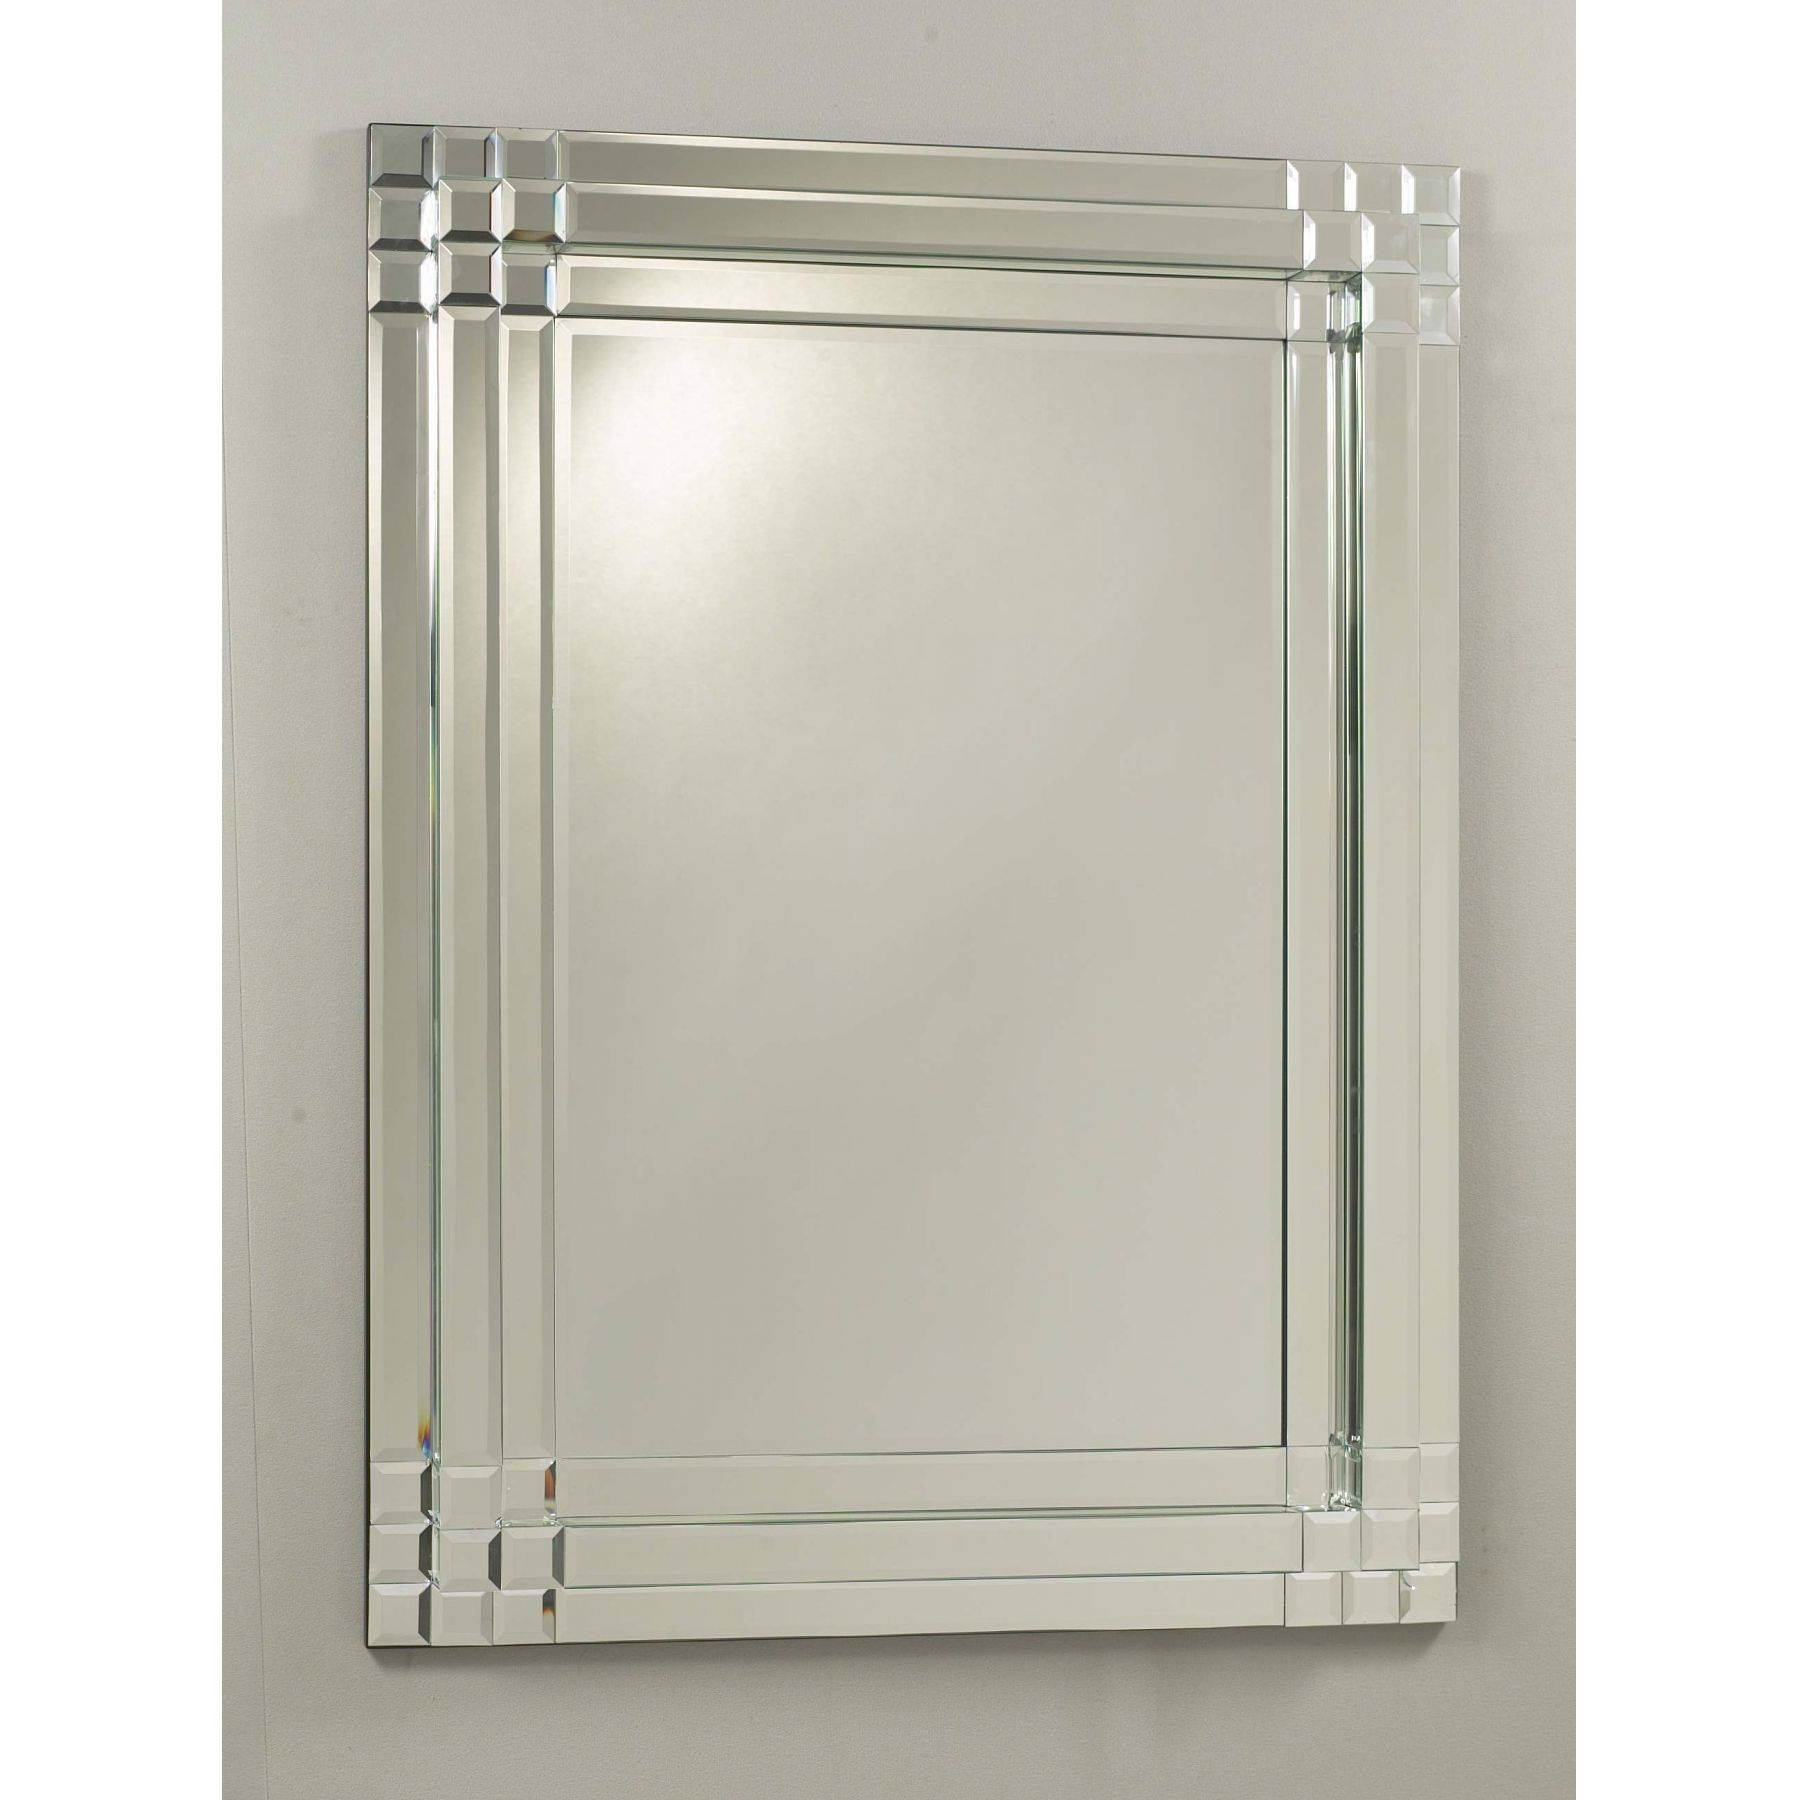 Silver Box Bevel Mirror - Miscellaneous From Homesdirect 365 Uk with Silver Bevelled Mirrors (Image 24 of 25)